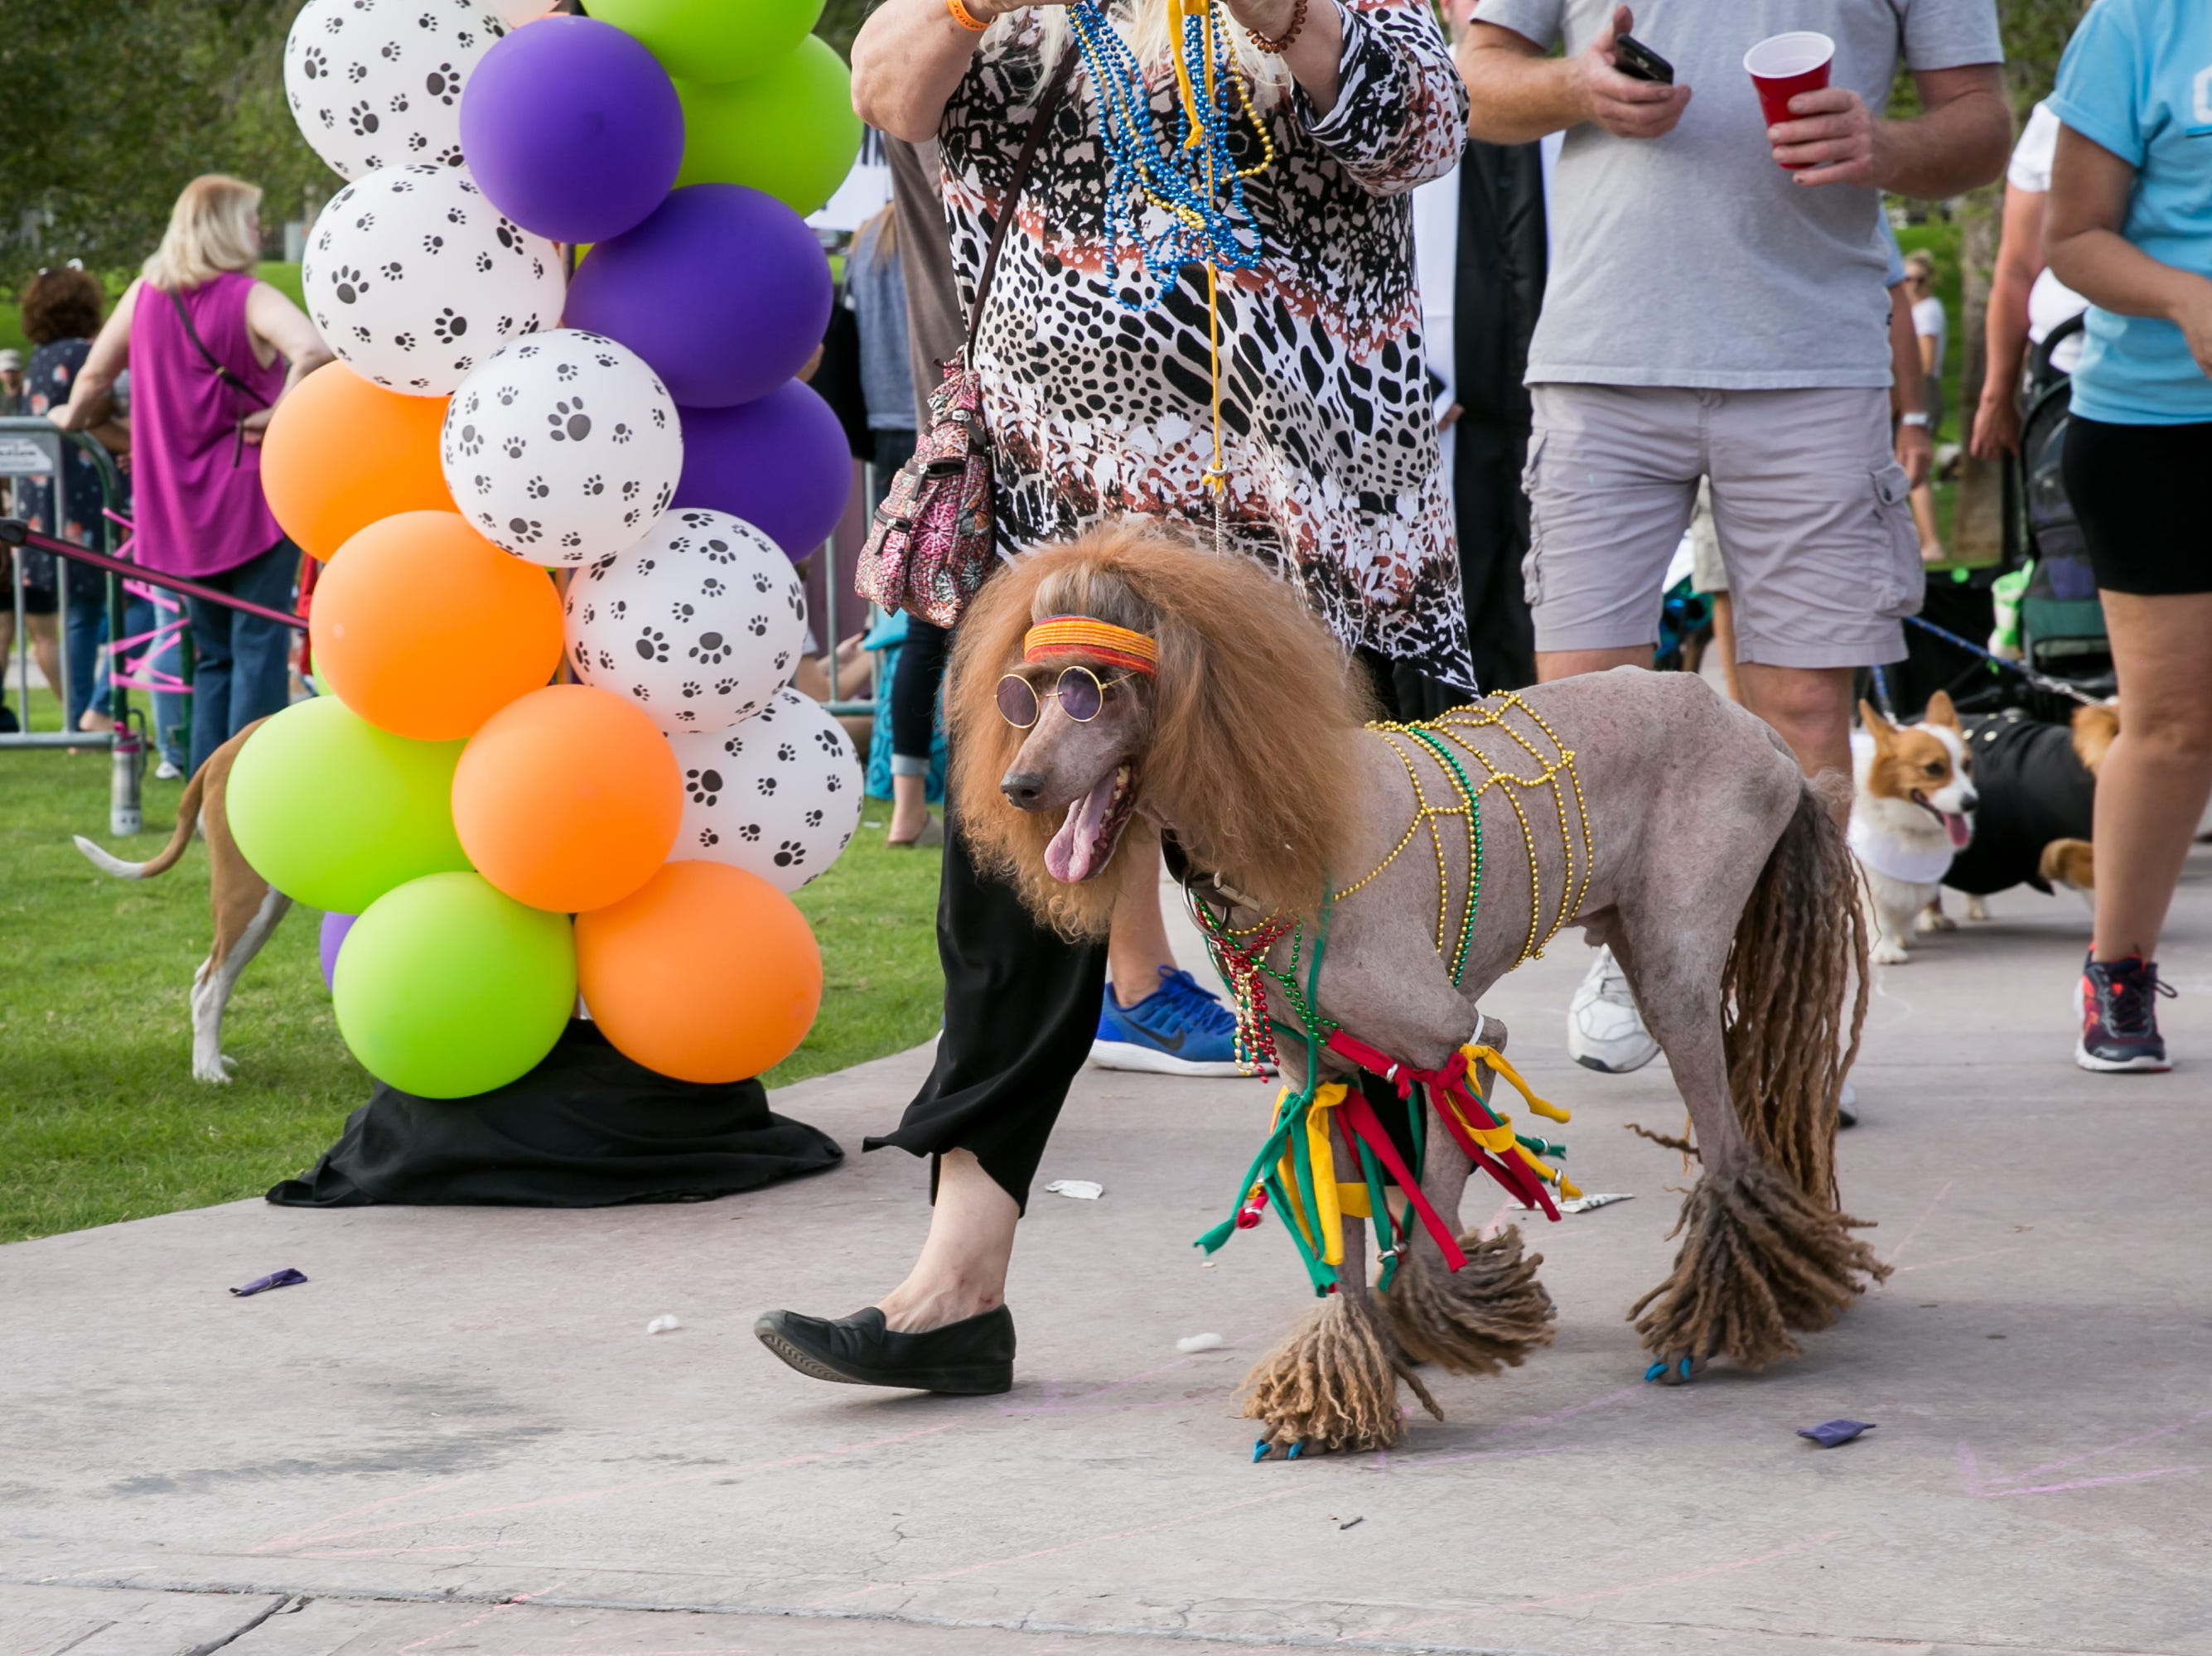 Hippie dog won the prize for best large dog costume during Howl-o-Ween at Hance Park on Sunday, October 28, 2018.